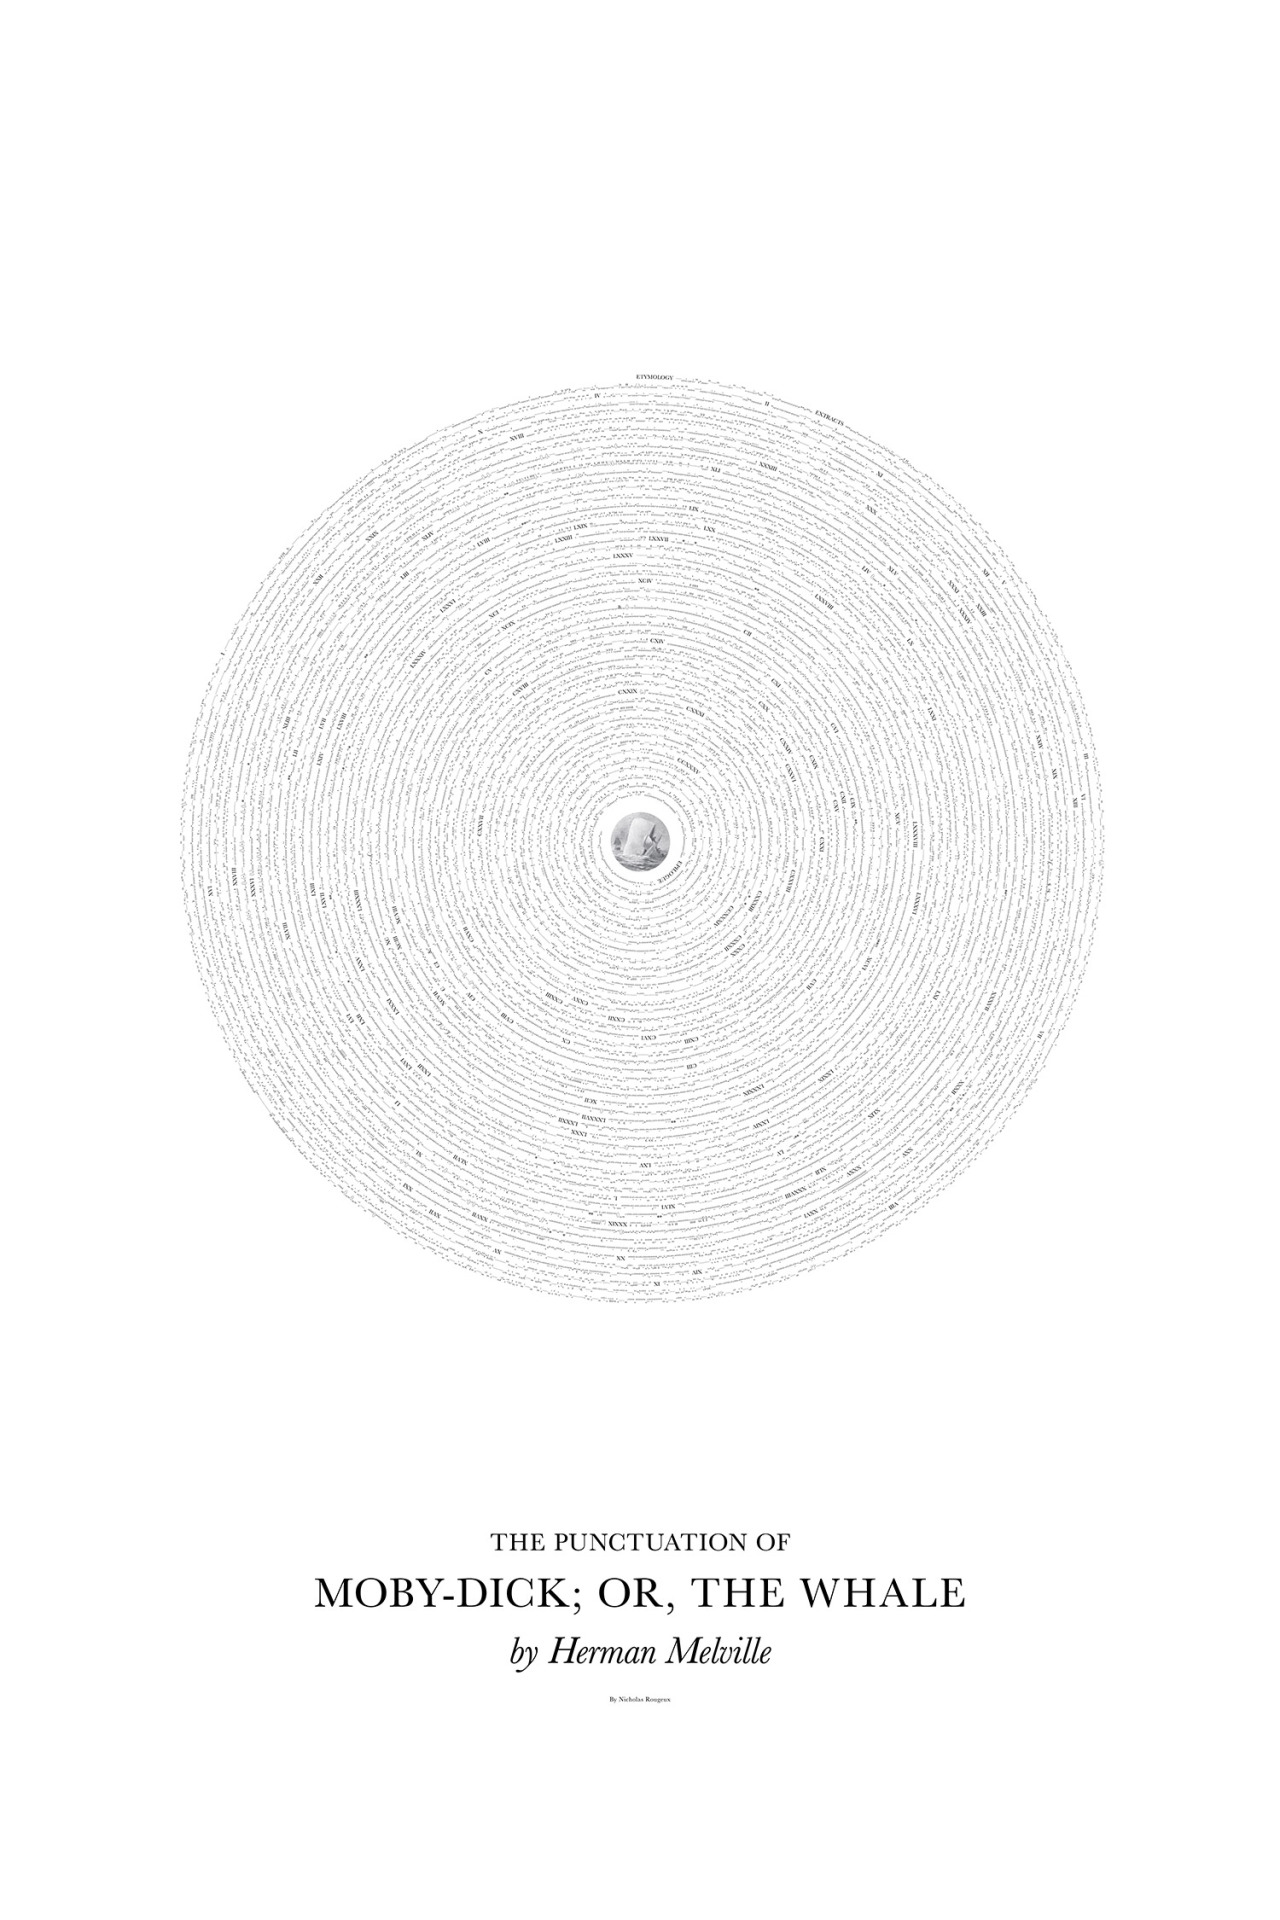 the punctuation of moby dick biblioklept tumblr o10crsb51l1qz6f9yo4 1280